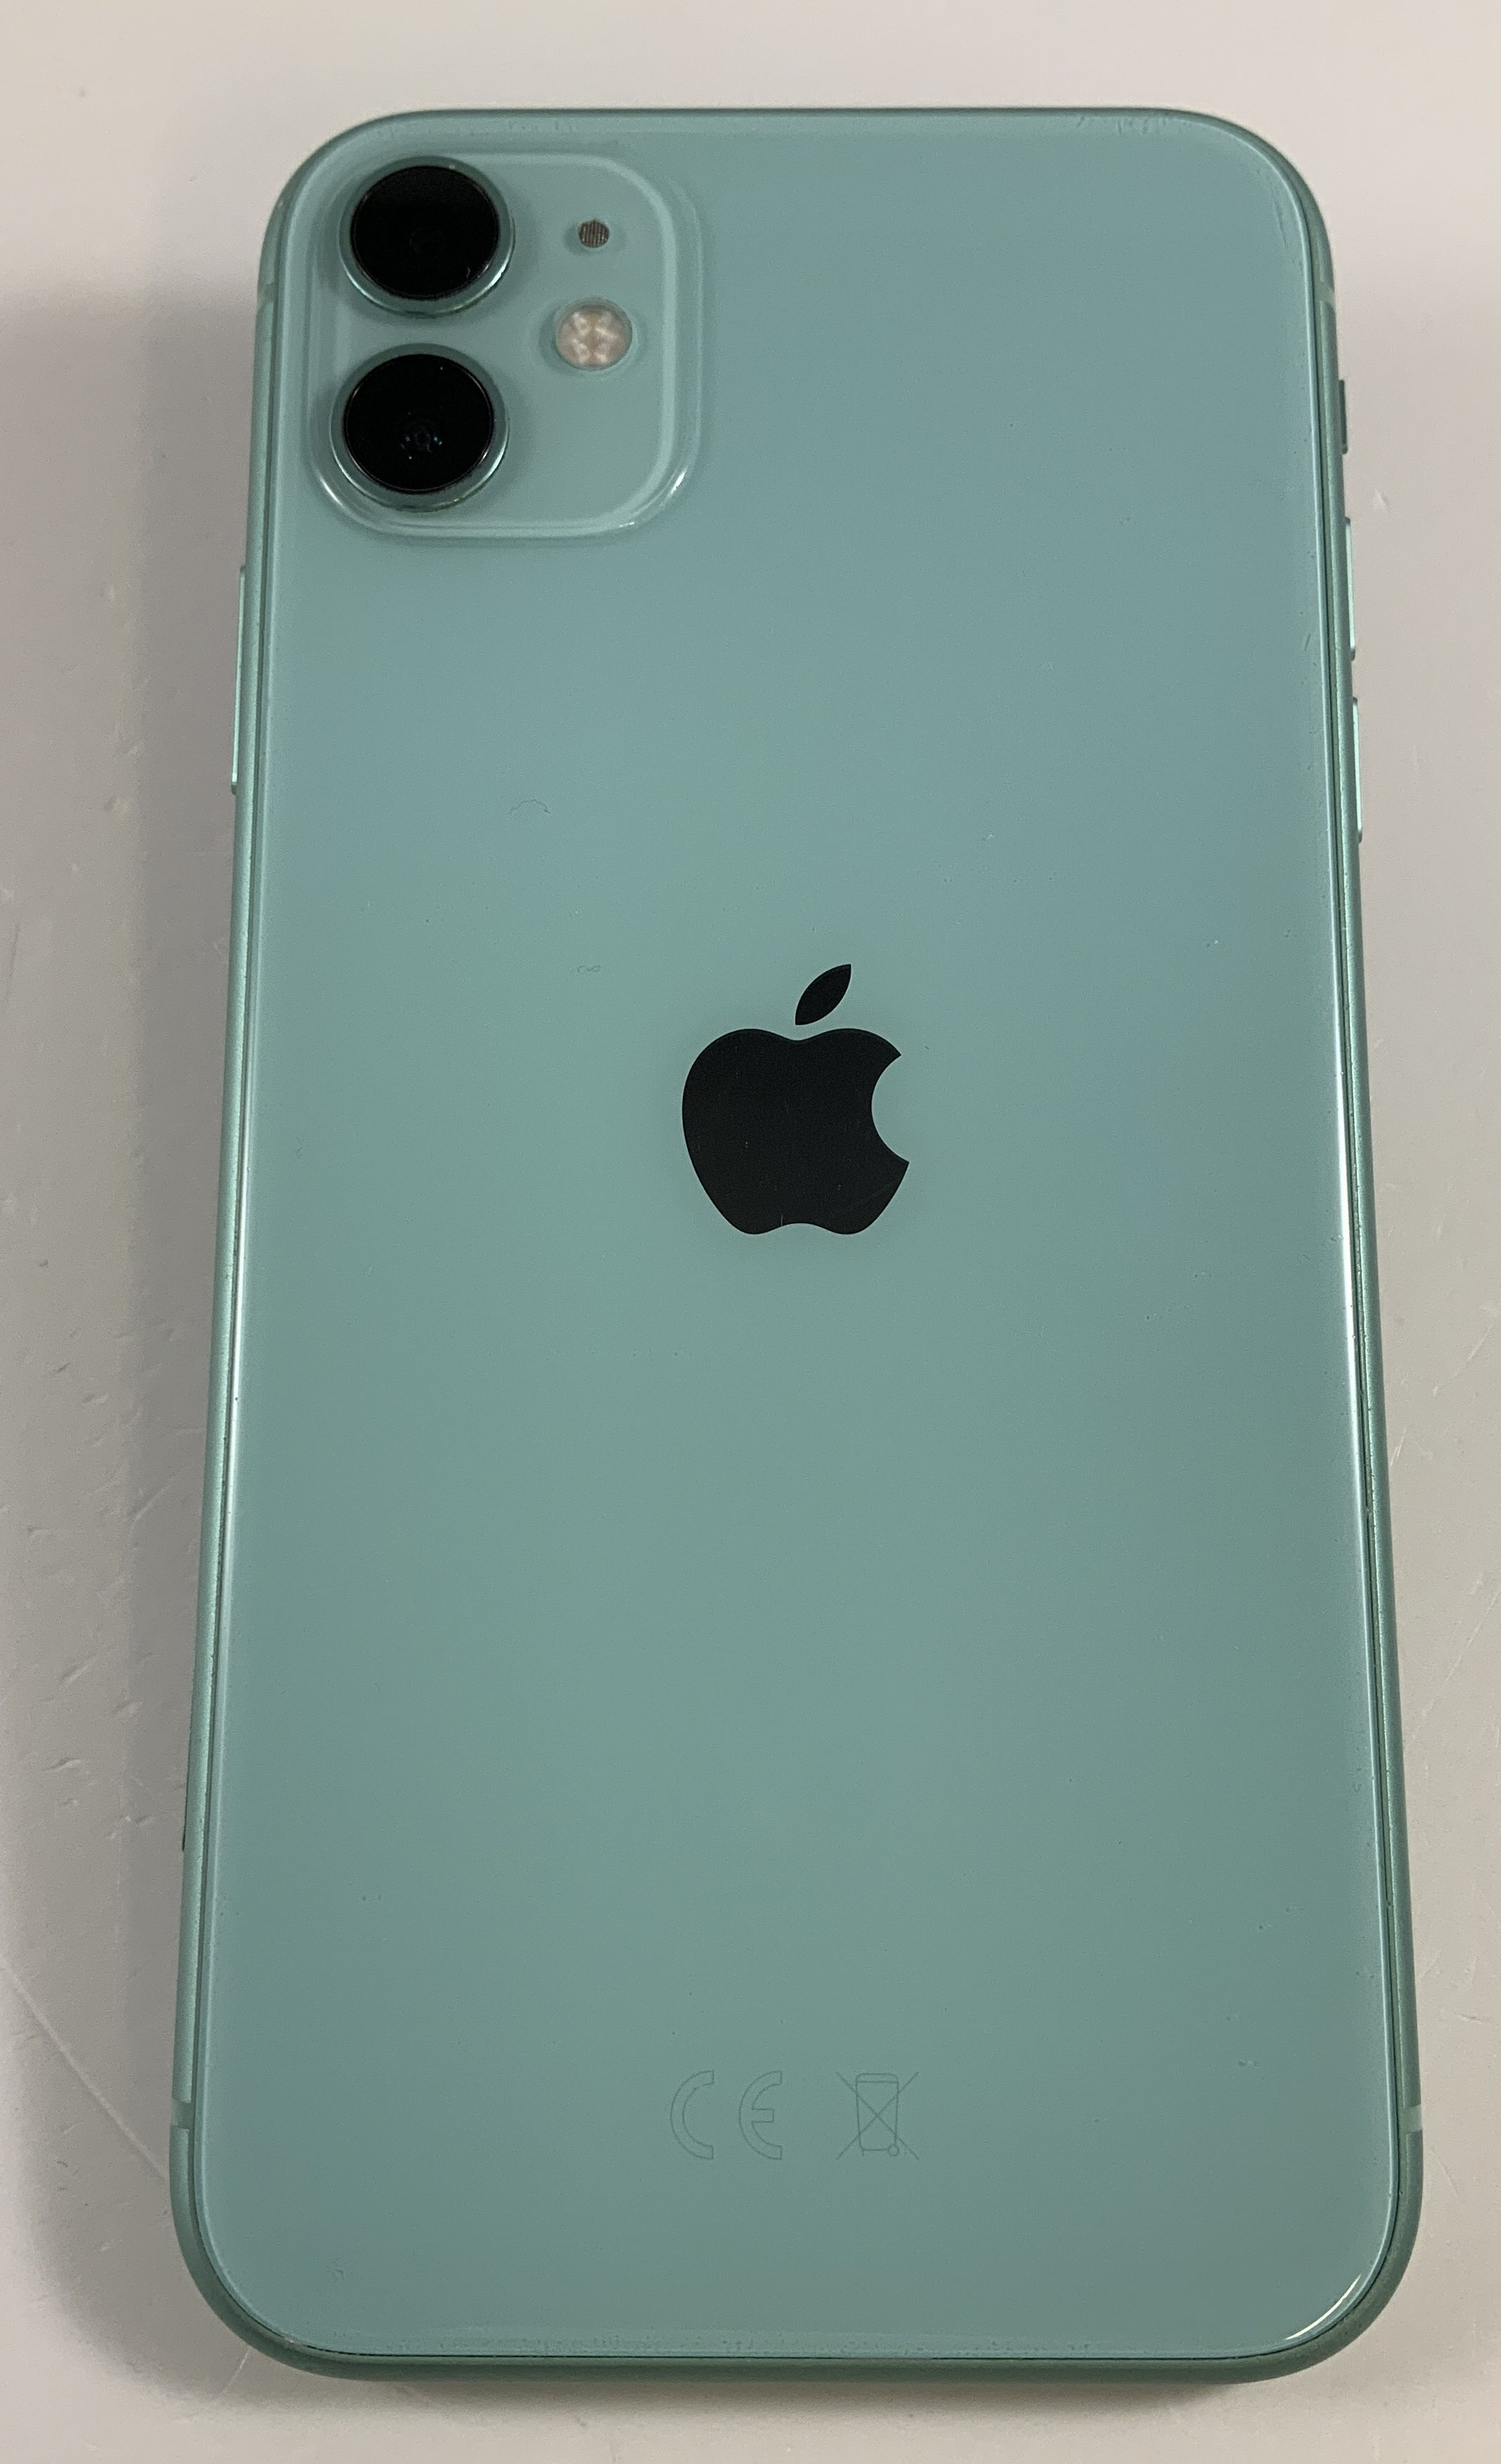 iPhone 11 64GB, 64GB, Green, immagine 2